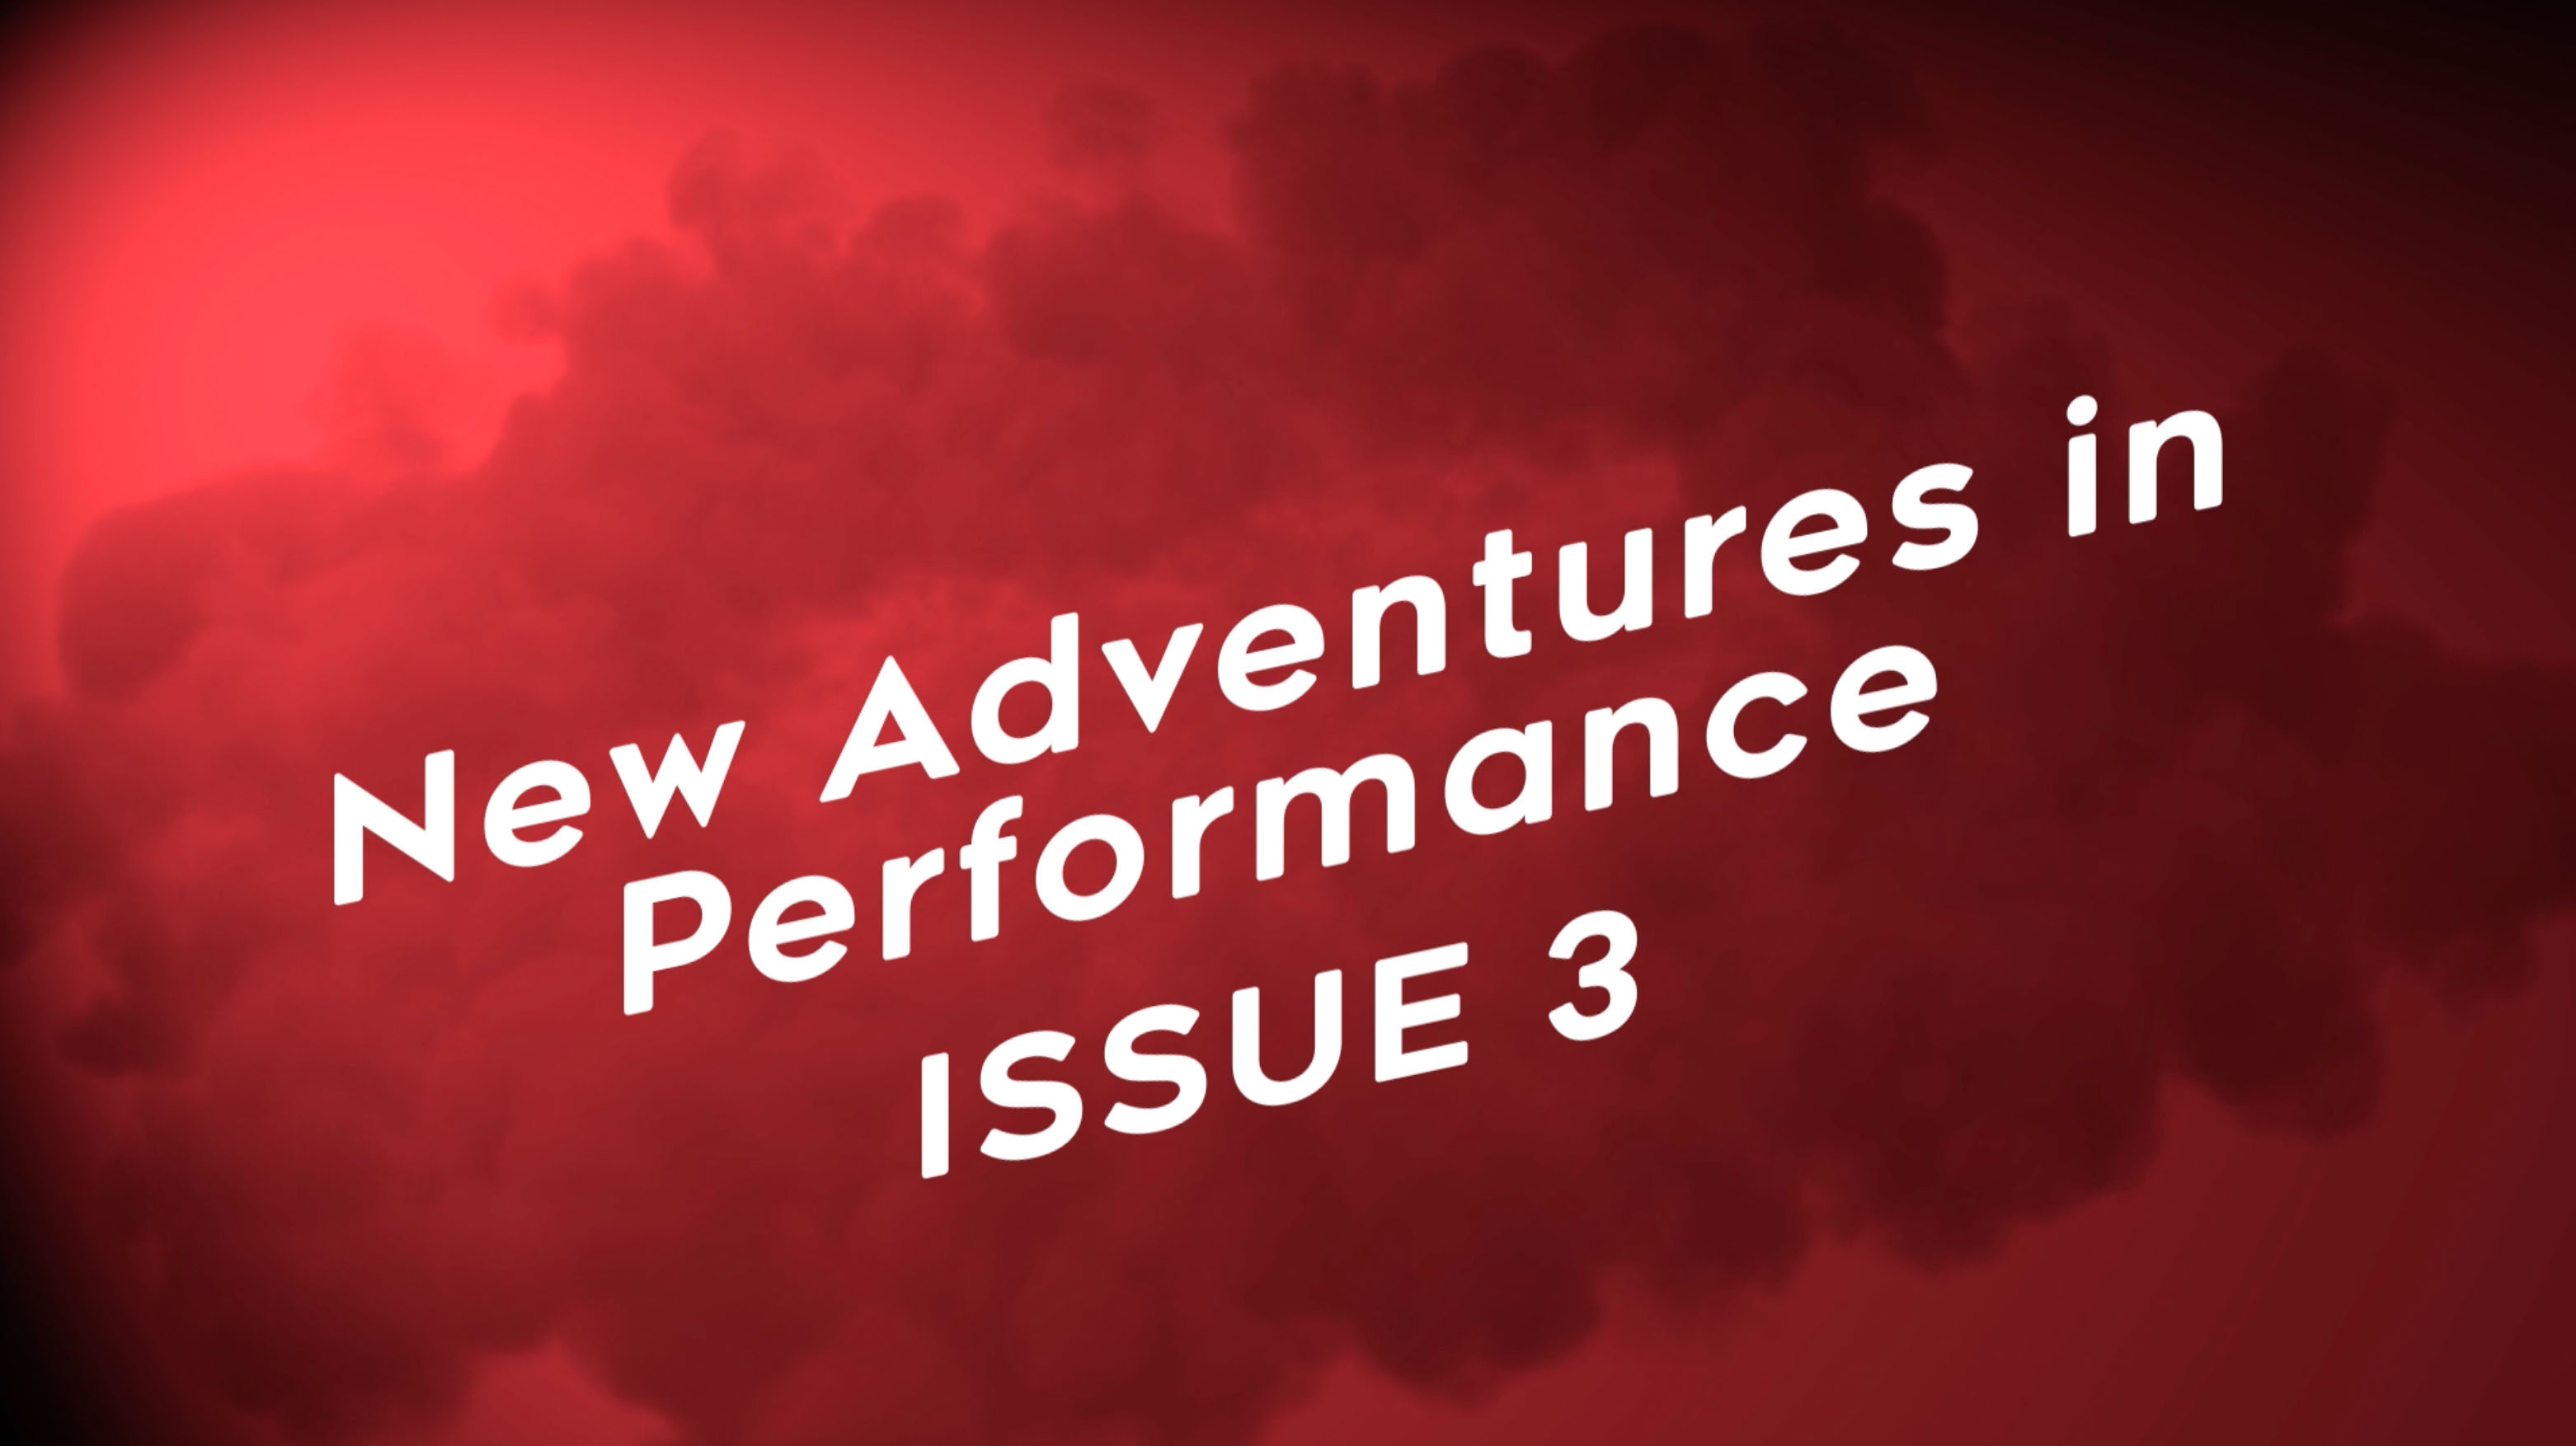 New Adventures in Performance - Issue 3 - September 2019